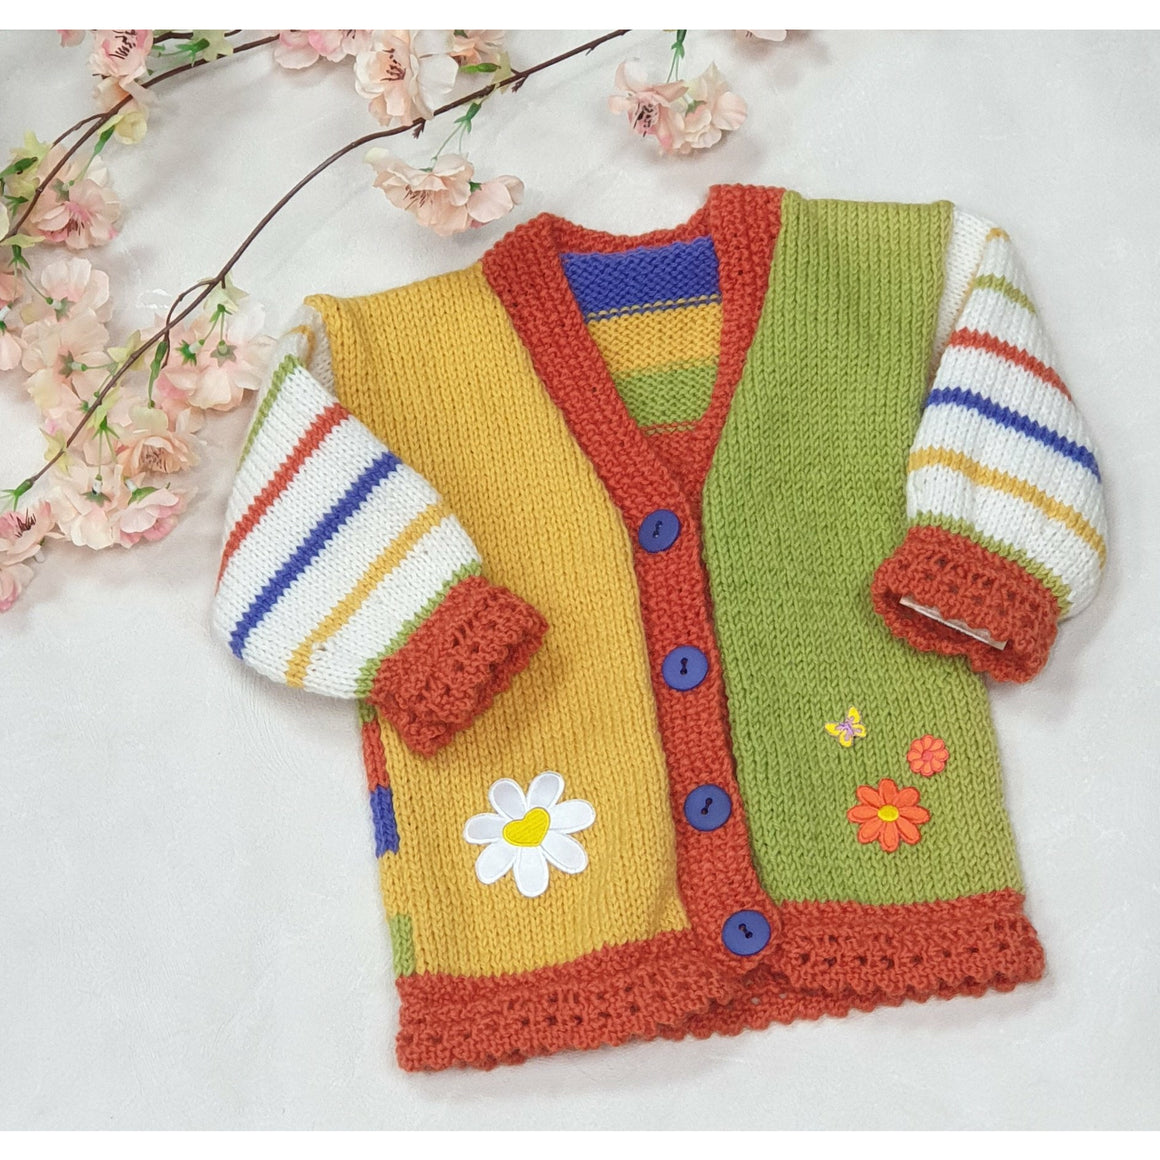 KNITWEAR - Yellow & Green with Orange Trim V Neck Cardi 15 mths